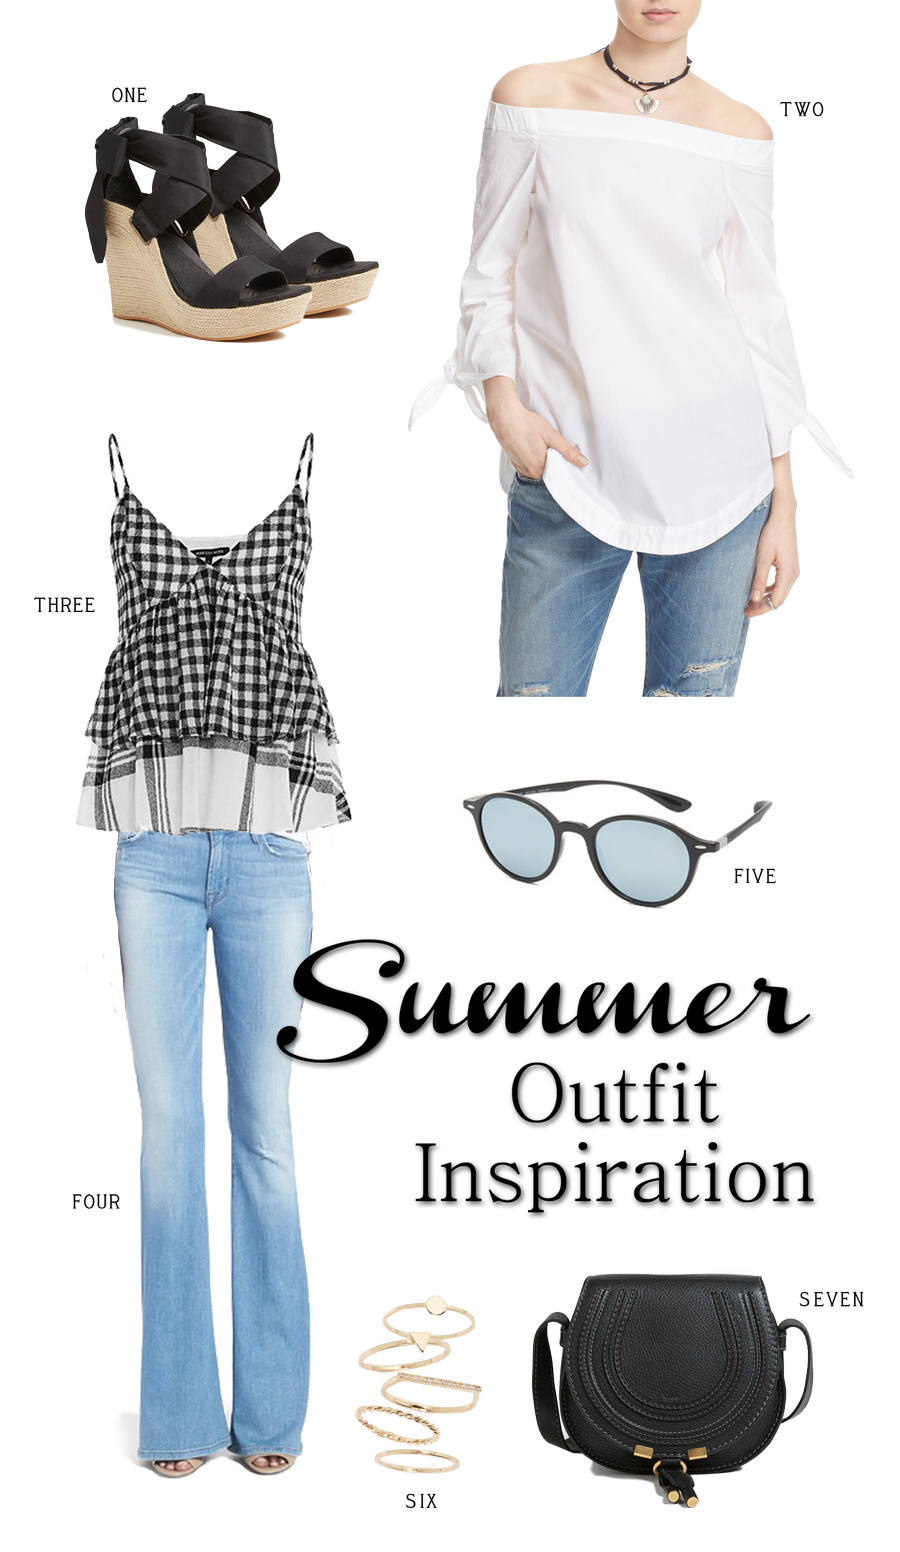 Summer Outfit Inspiration with espadrilles, gingham cami, off the shoulder blouse, ray ban sunglasses, chloe handbag. So cute & perfect! | The Classified Chic